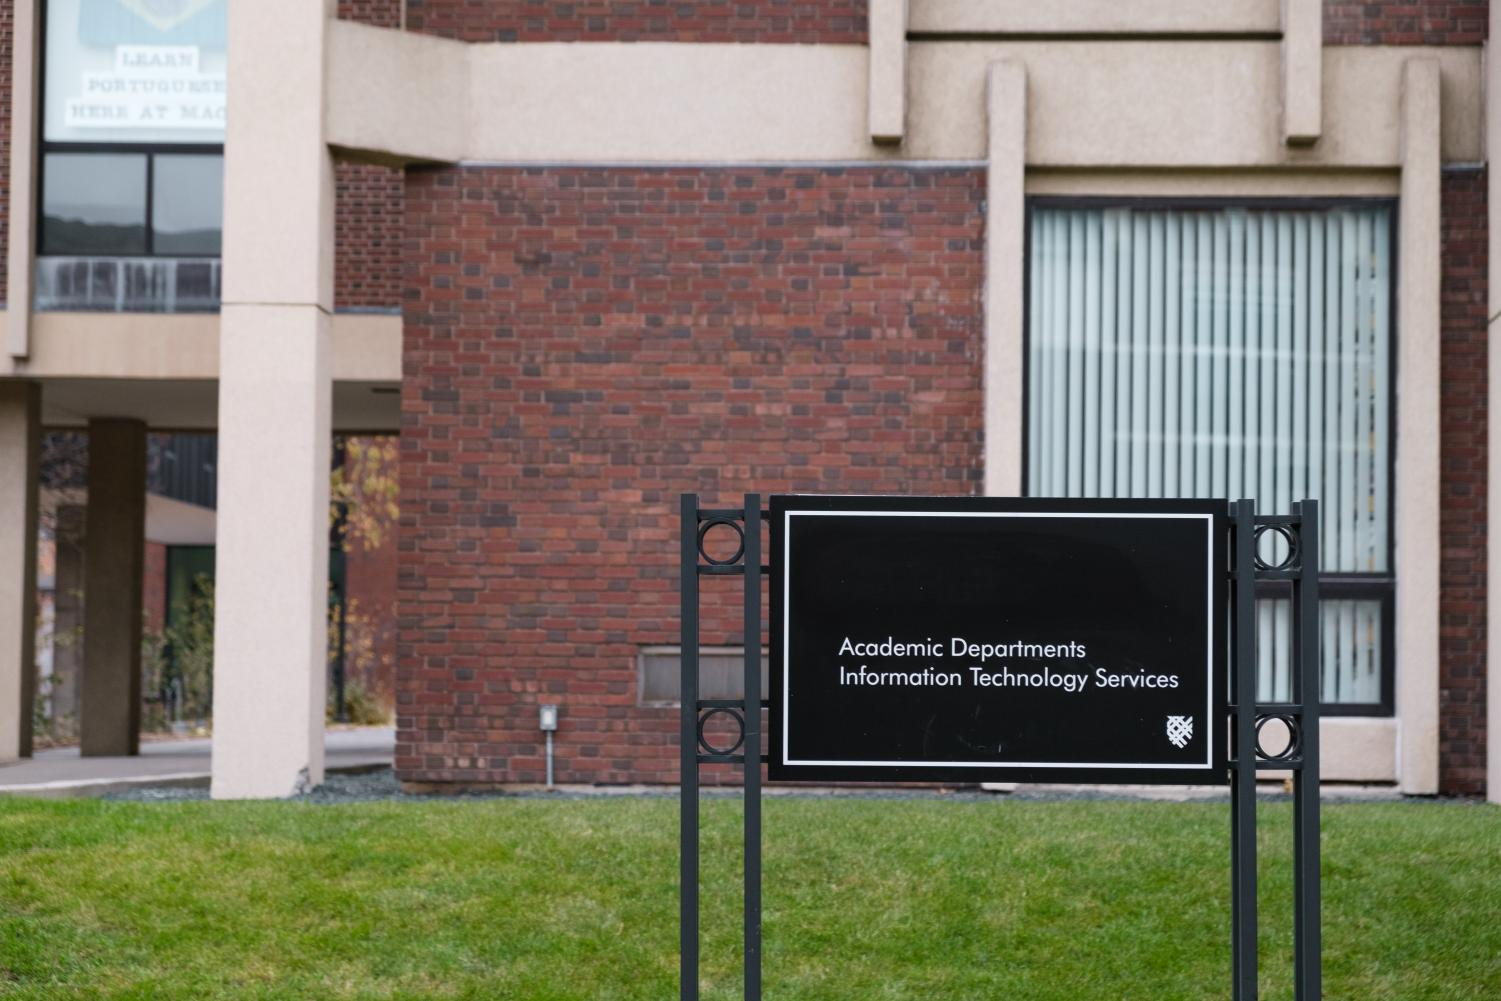 The sign outside of the Humanities Building no longer reads